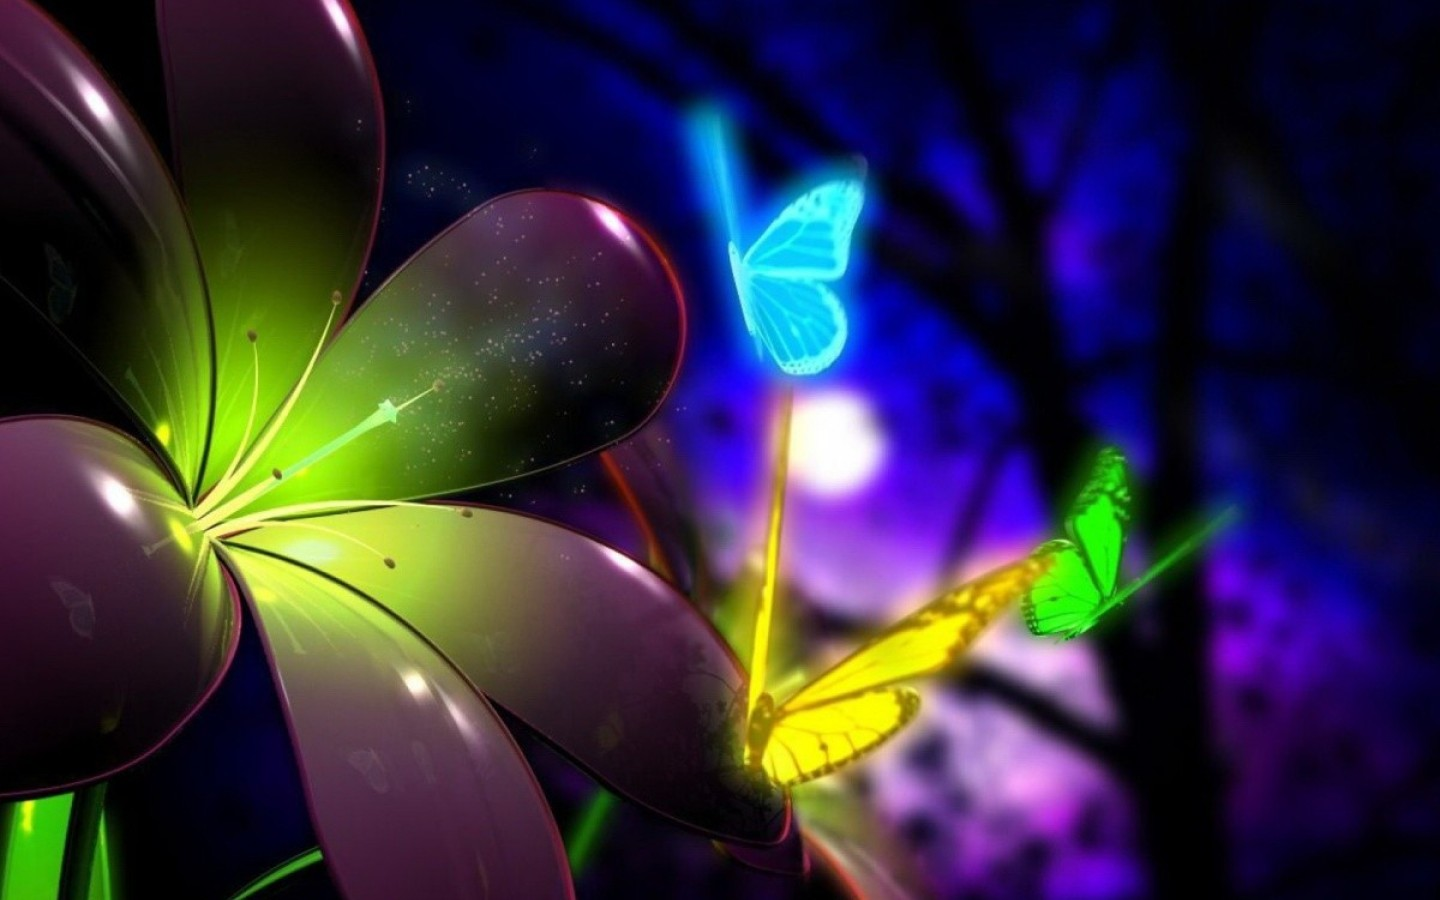 cool 3d butterflies hd tablet wallpaper share this awesome hd tablet 1440x900